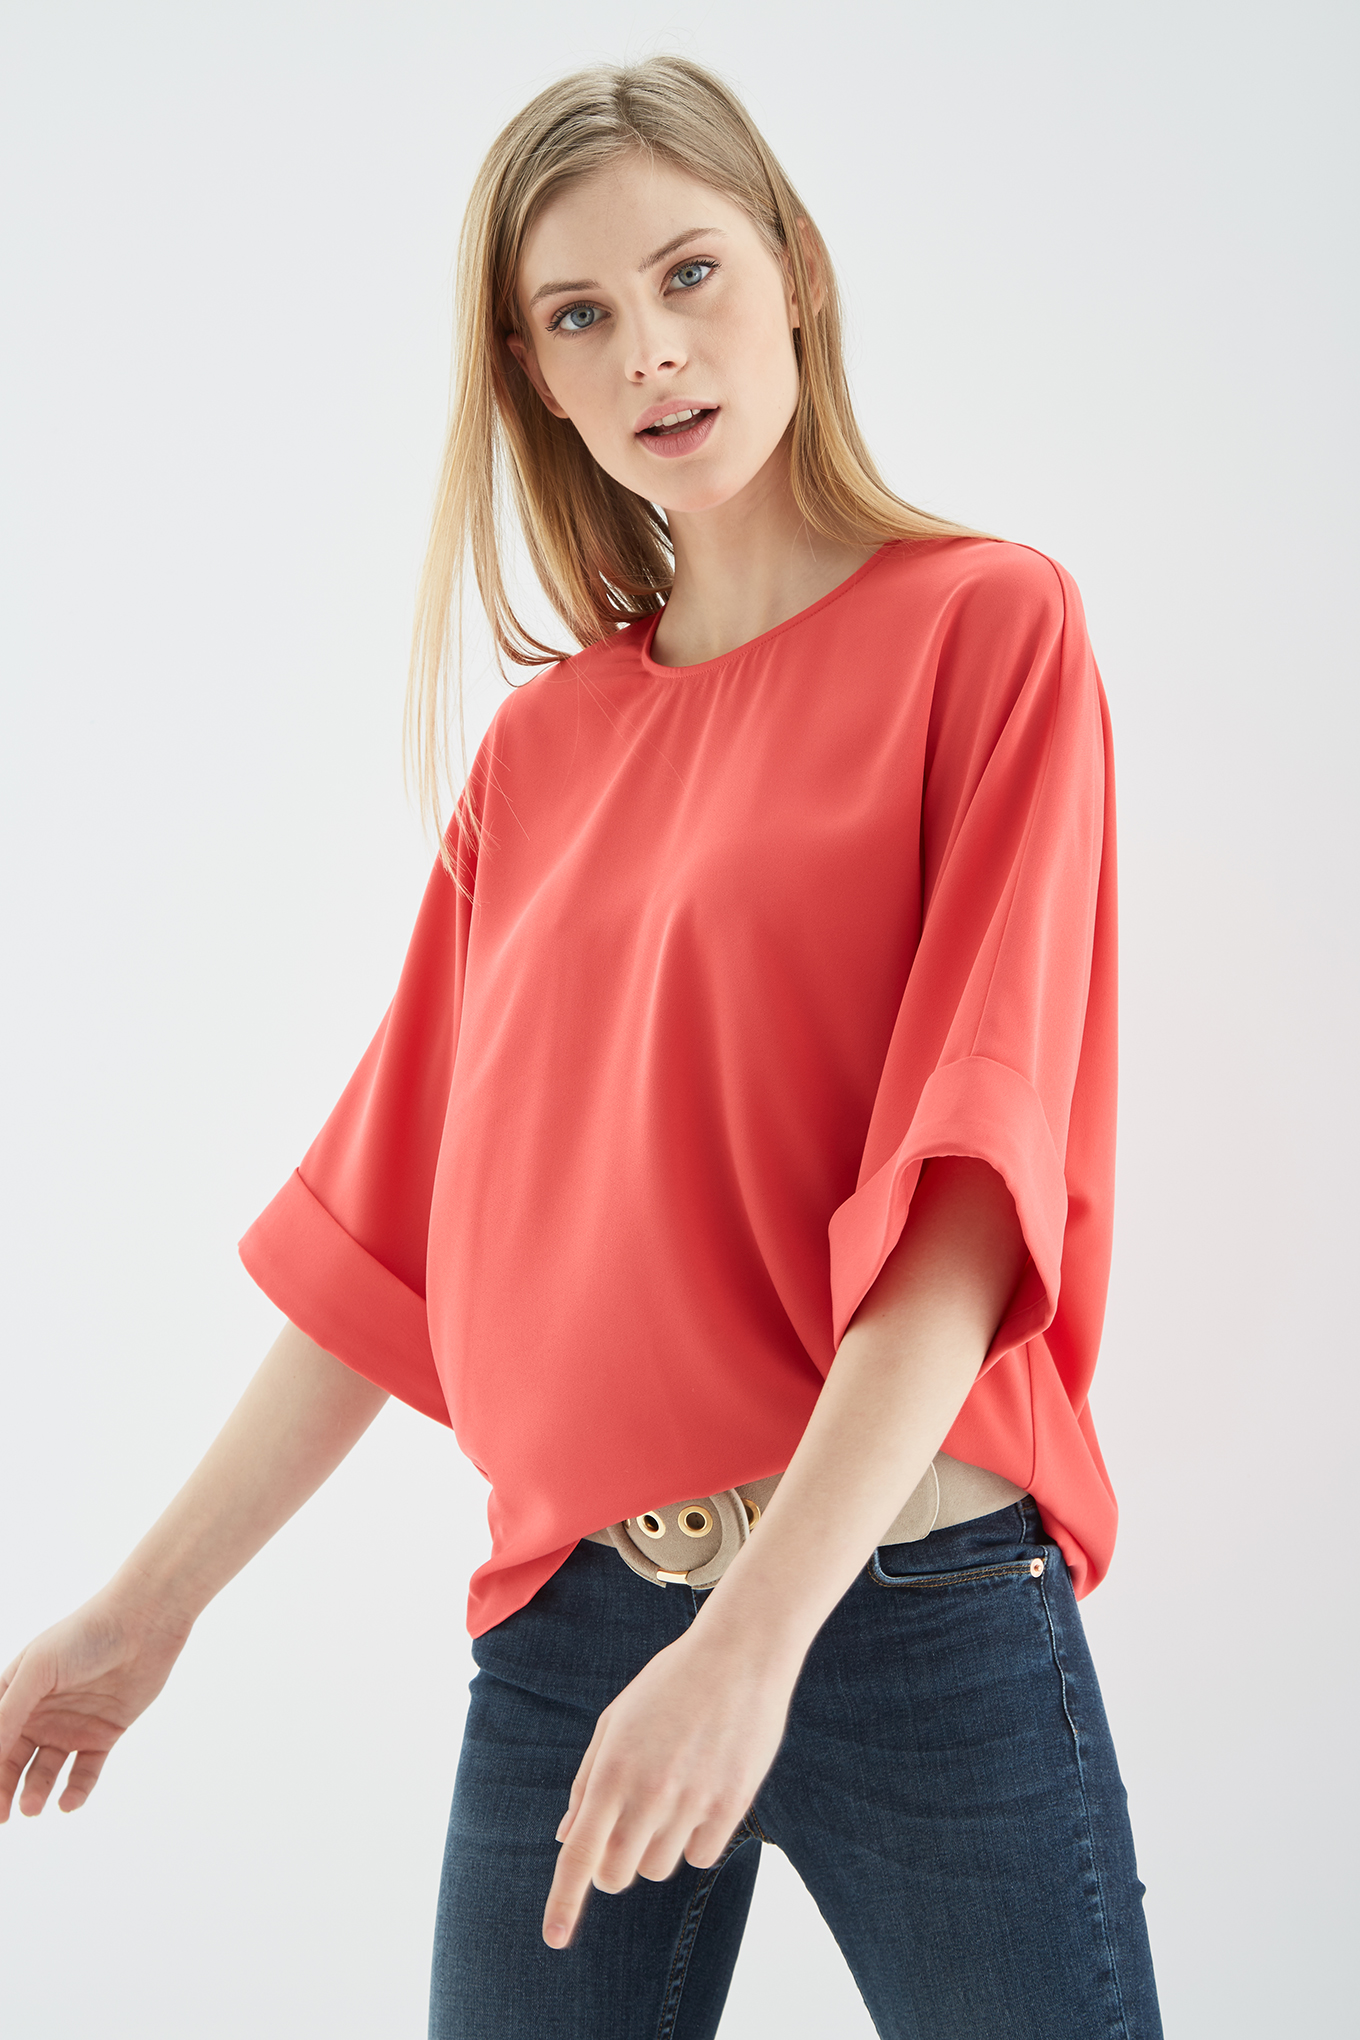 Blouse Salmon Fantasy Woman